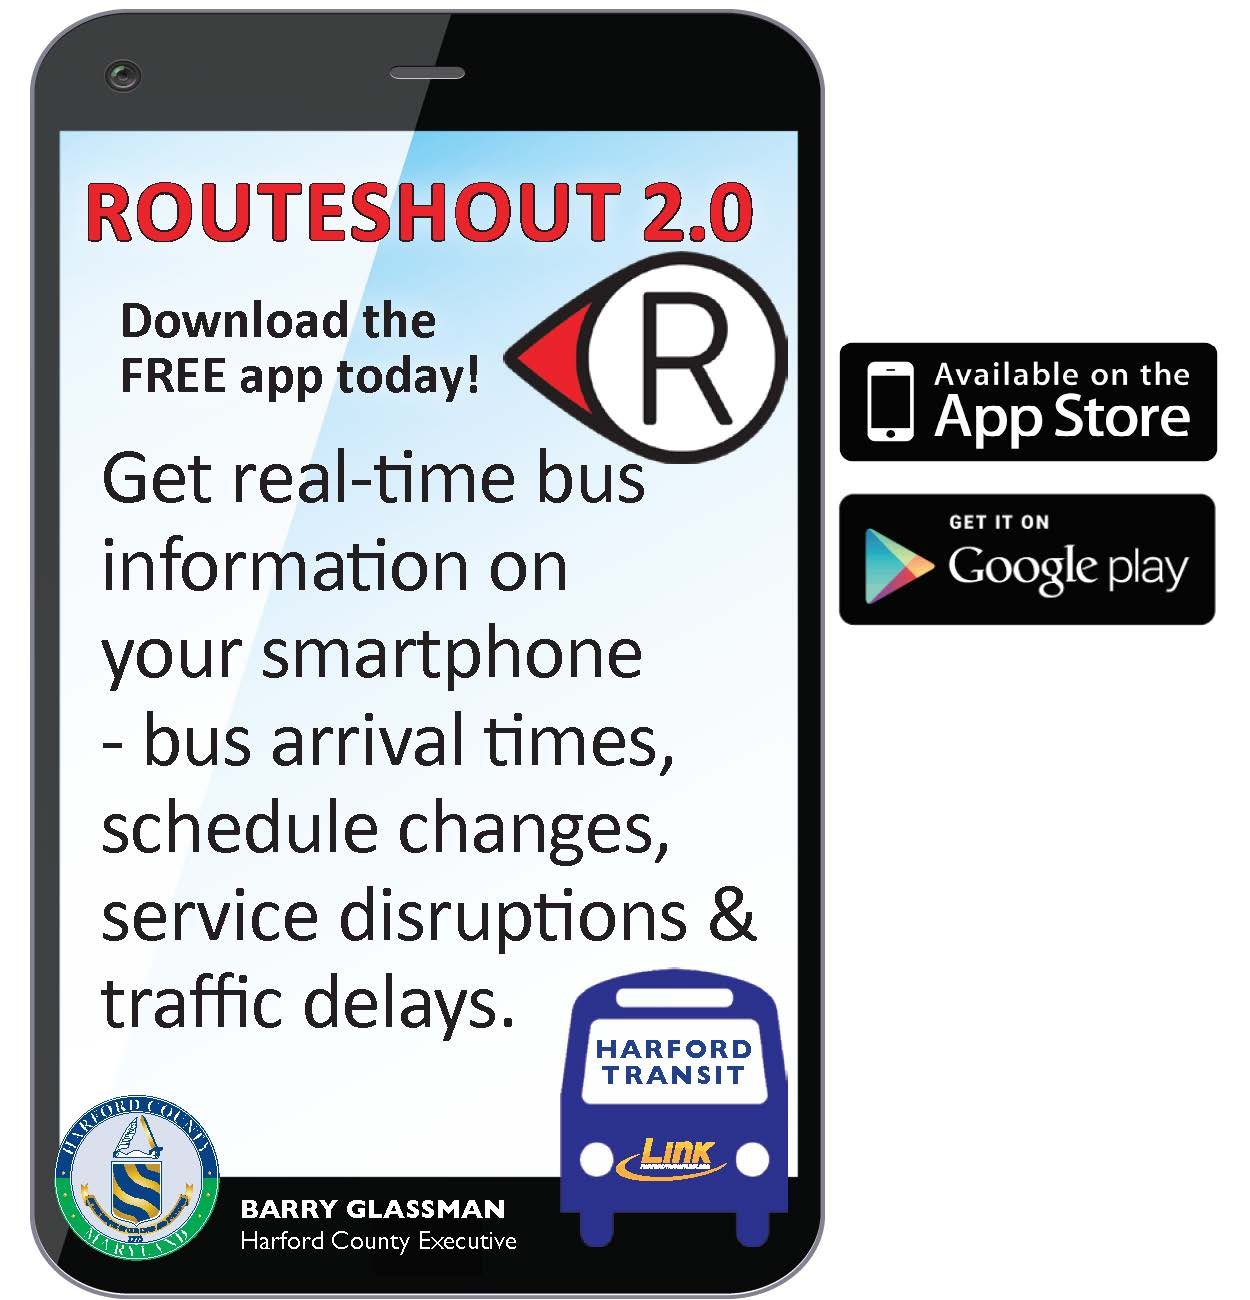 RouteShout 2.0 Cell Phone Icon for Website